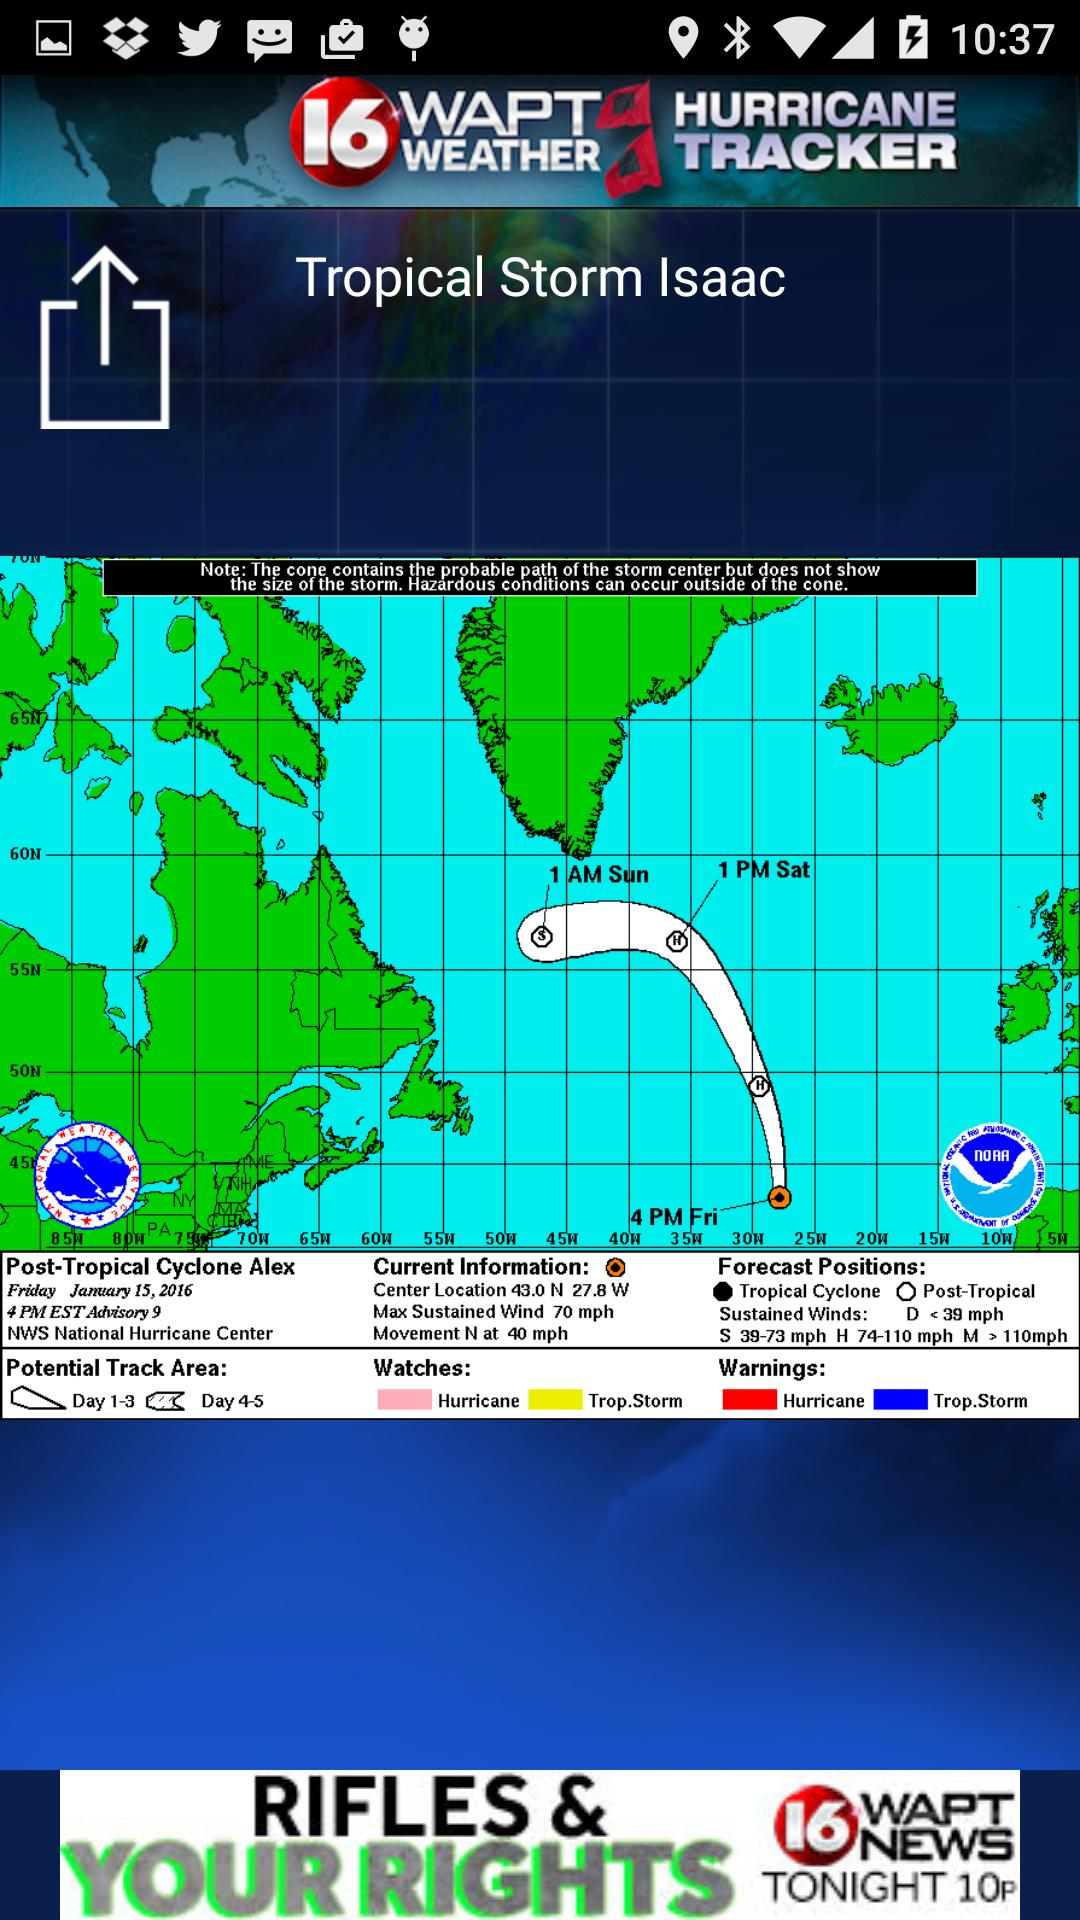 Hurricane Tracker 16 WAPT News for Android - APK Download